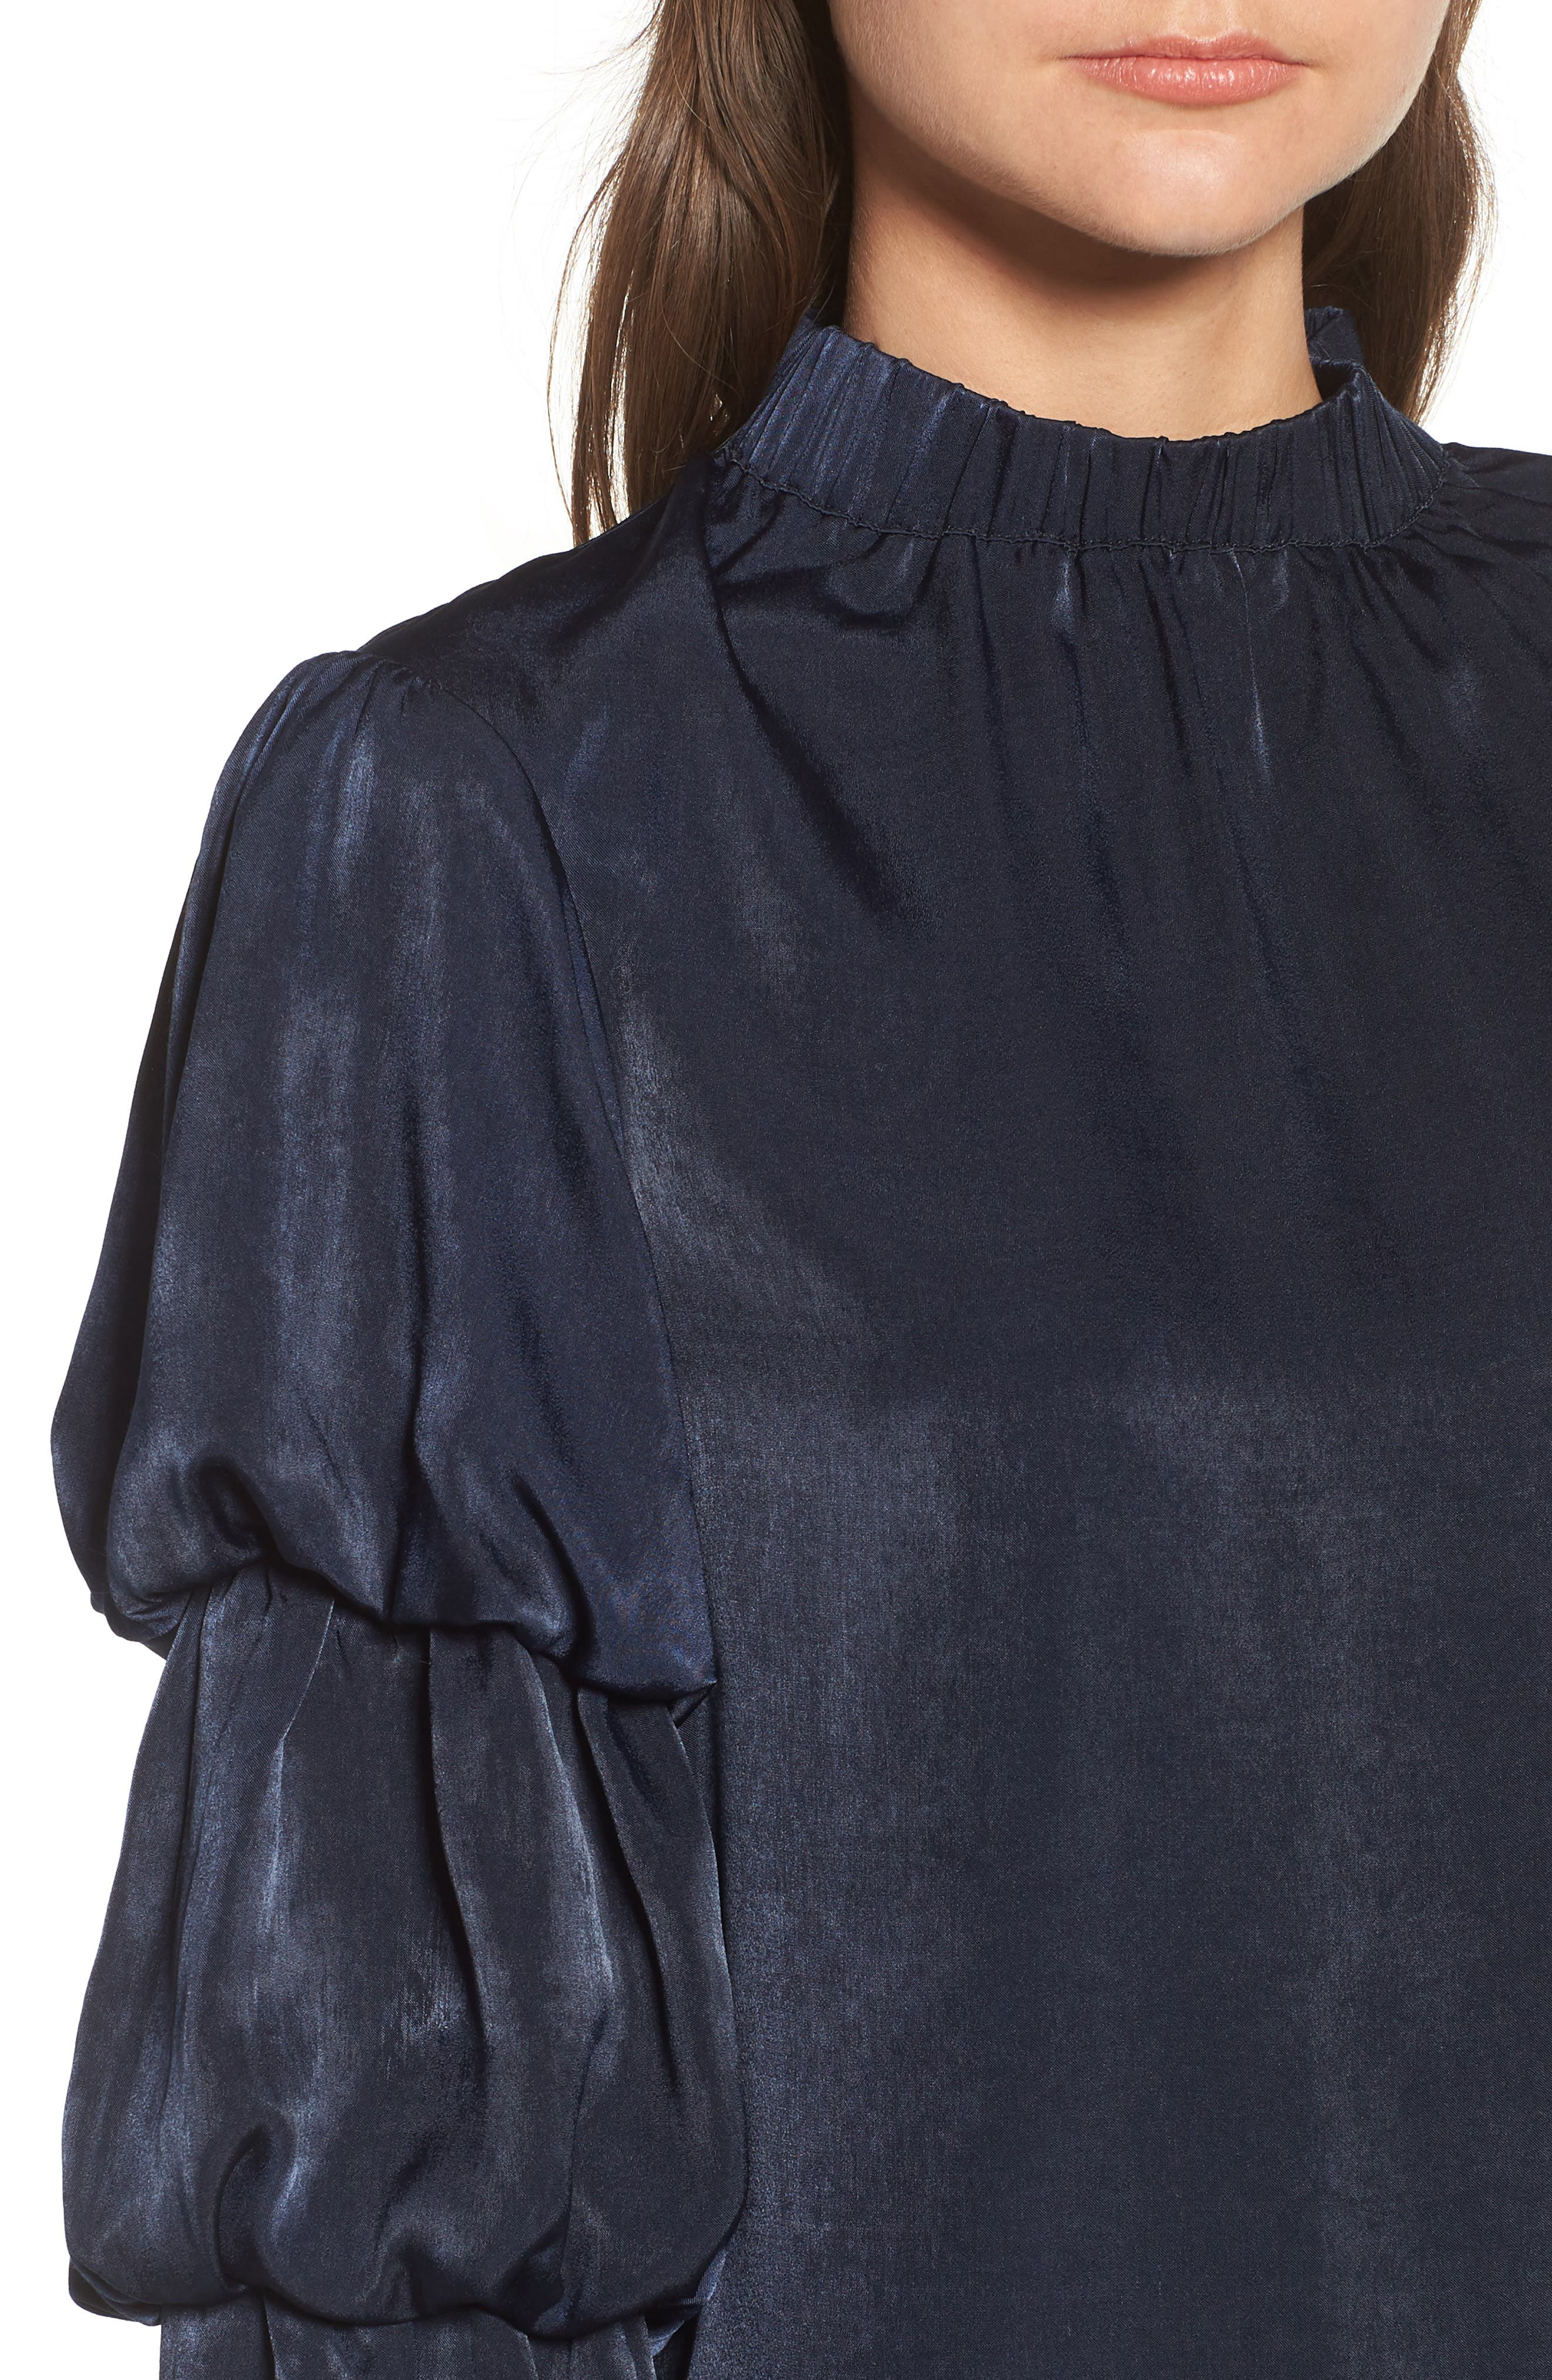 Tiered Sleeve Shift Dress,                             Alternate thumbnail 4, color,